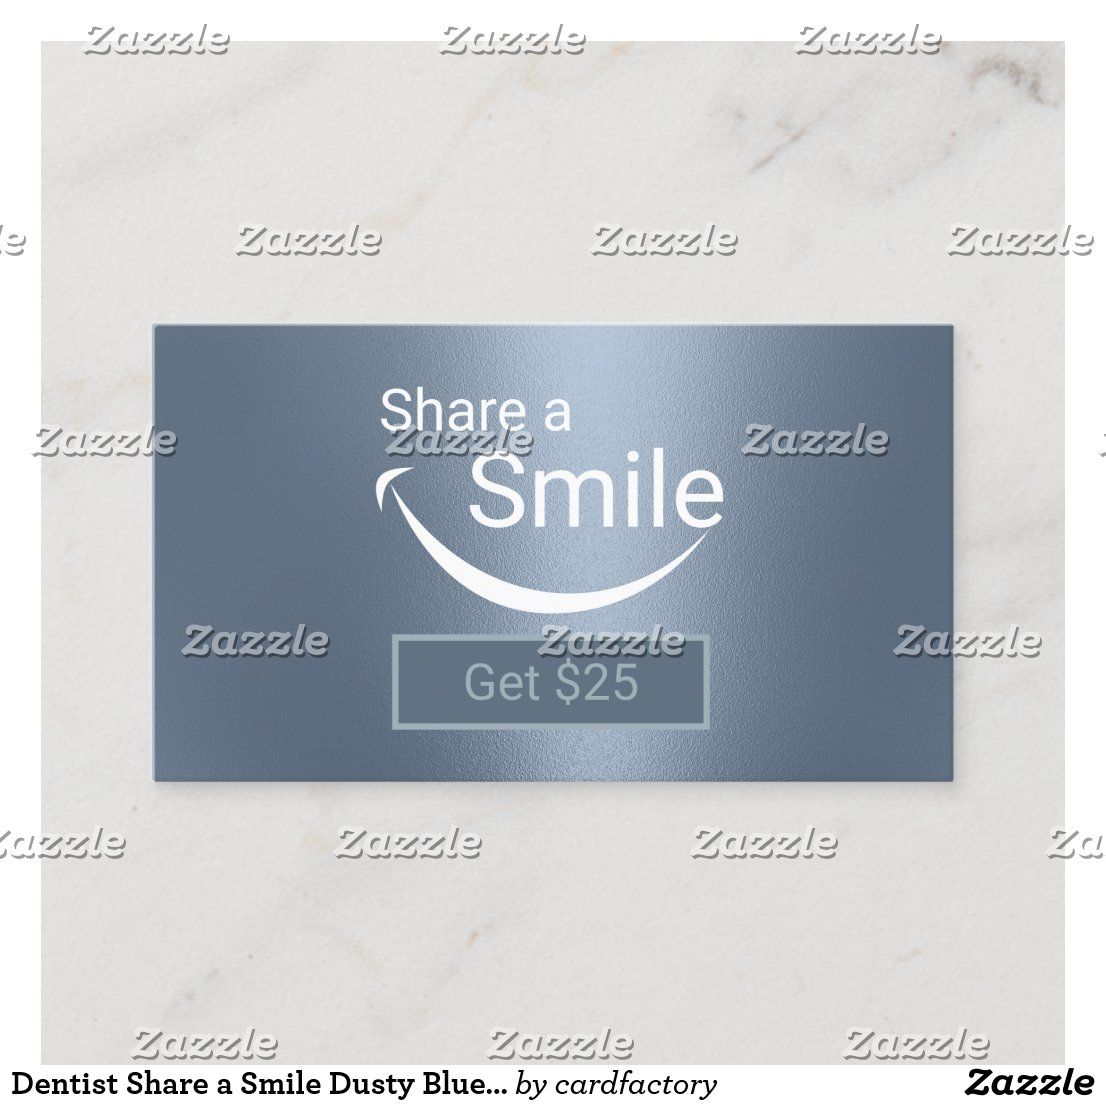 Dentist Share A Smile Dusty Blue Dental Referral Zazzle Com Referral Cards Standard Business Card Size Dentist